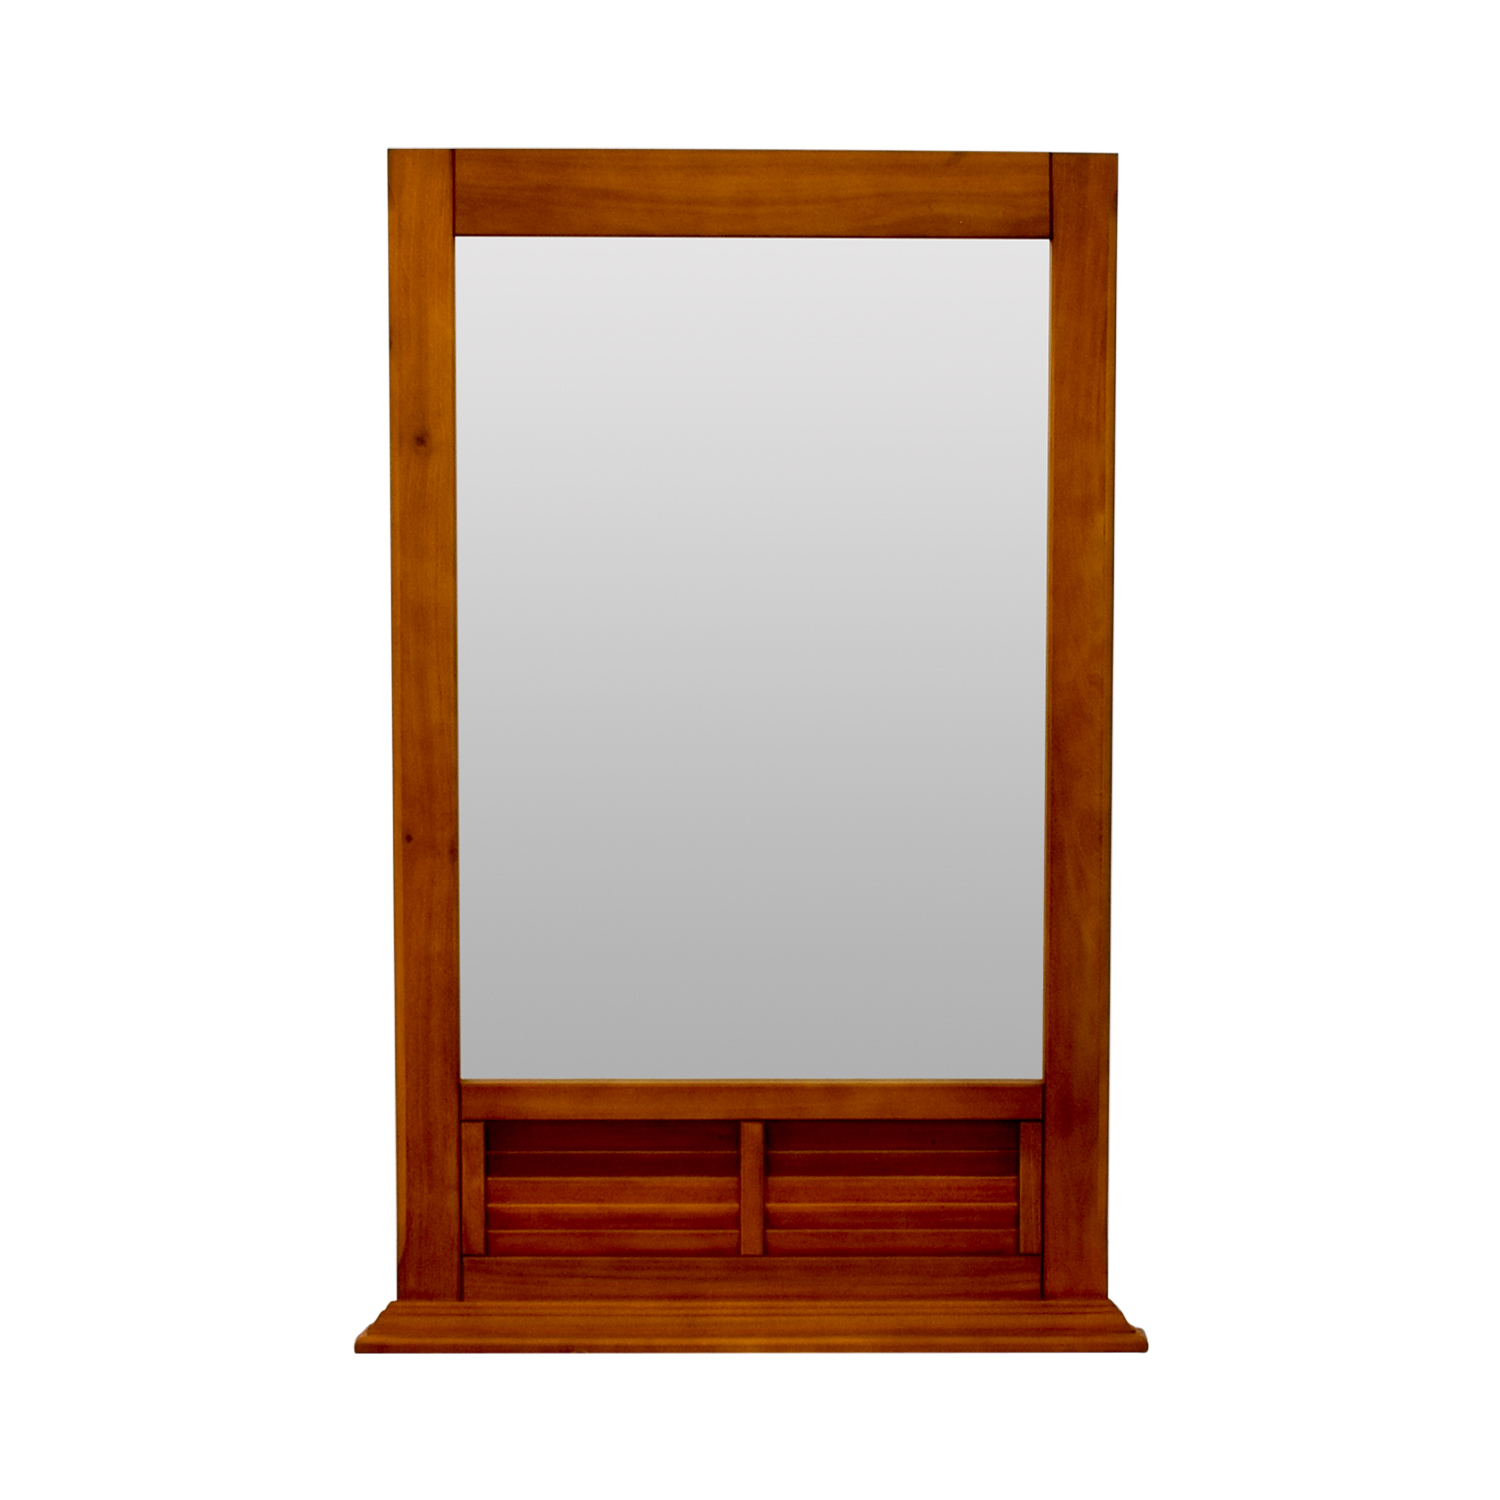 Used mirrors new york for Buy wood windows online